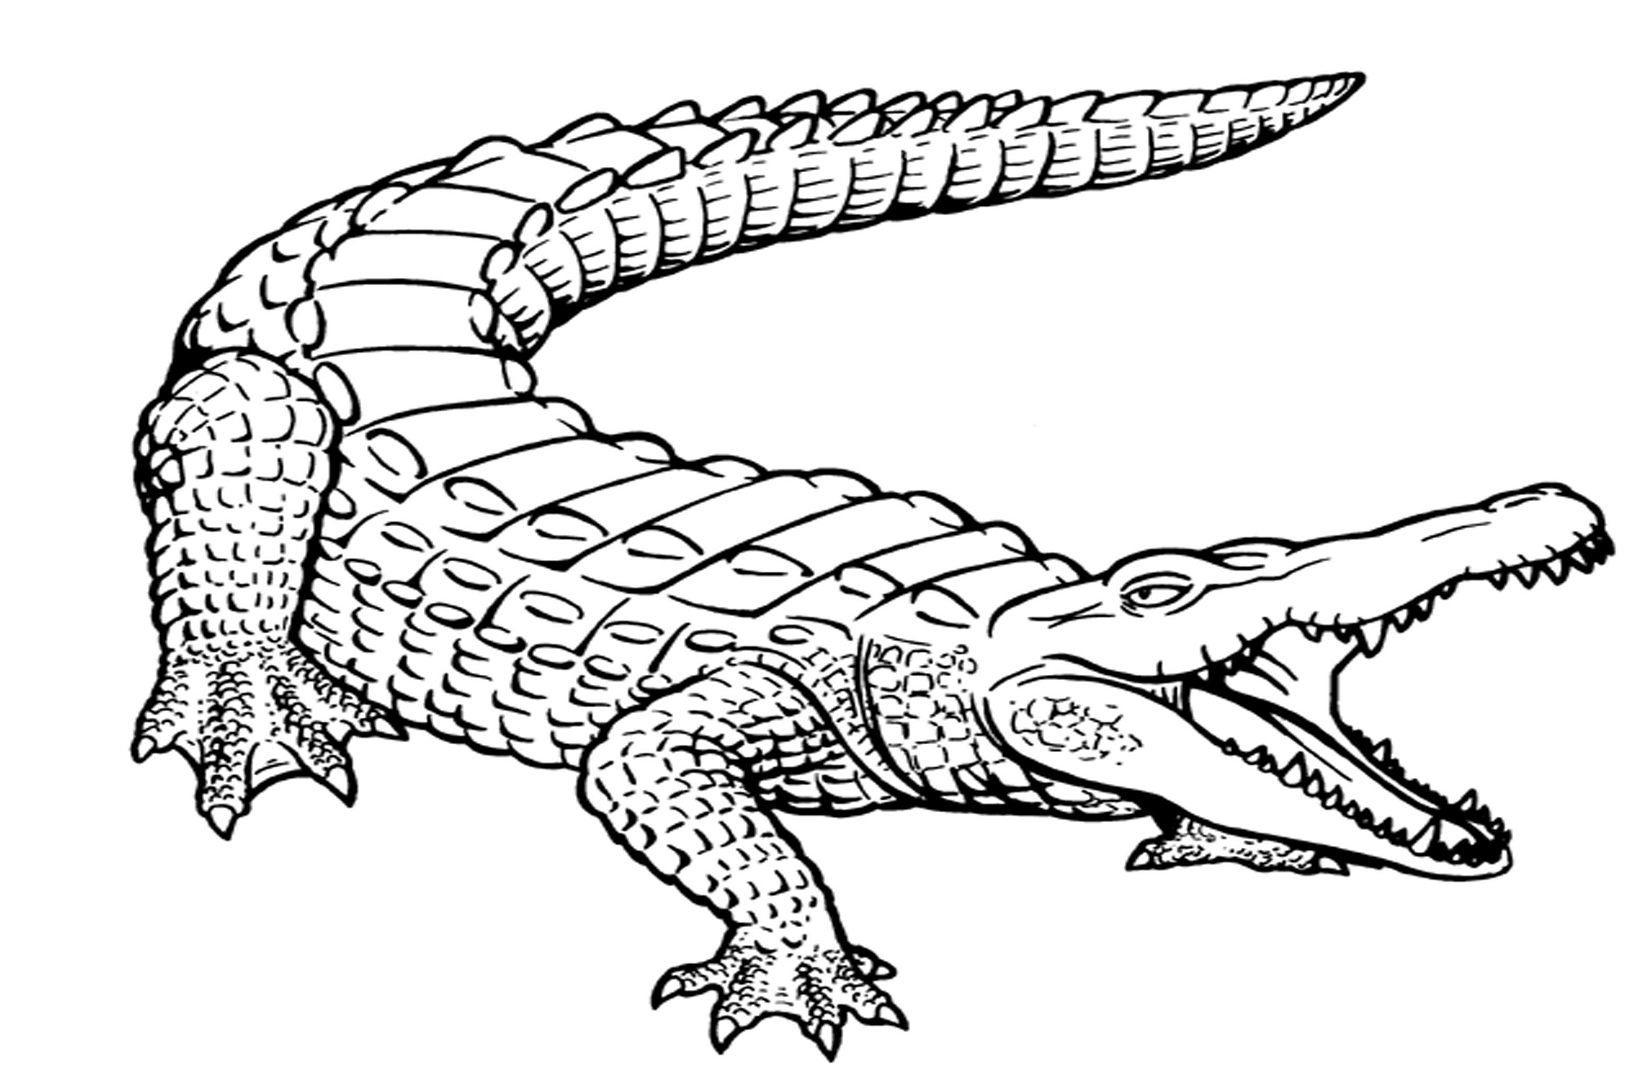 Alligator coloring page images